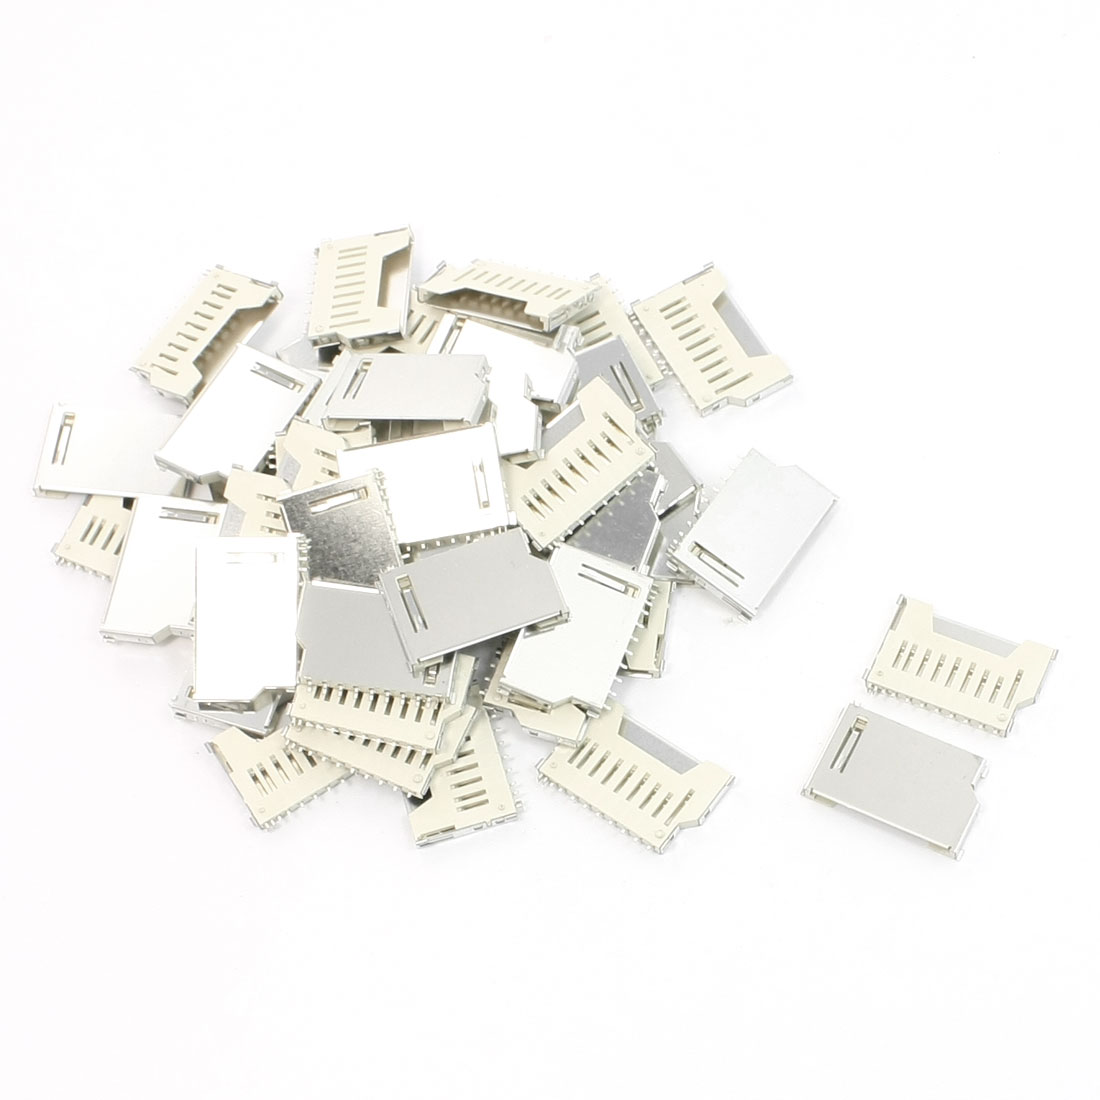 50 Pcs SD Memory Card Sockets Connectors Replacements 16mm x 26mm